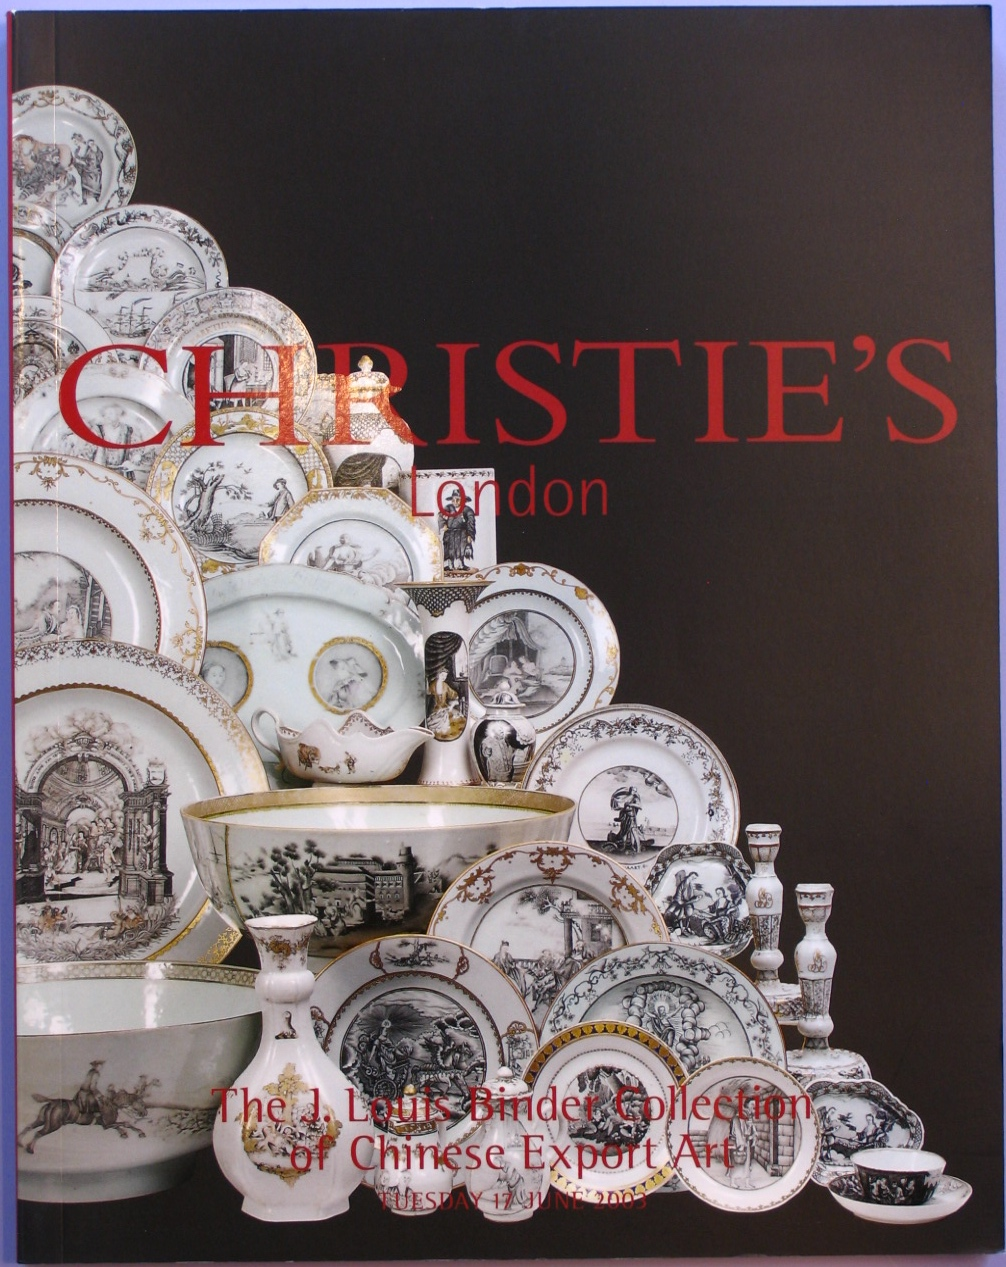 CL20030618: Bookshop: [2003] Christie's The J. Louis Binder Collection of Chinese Export Art